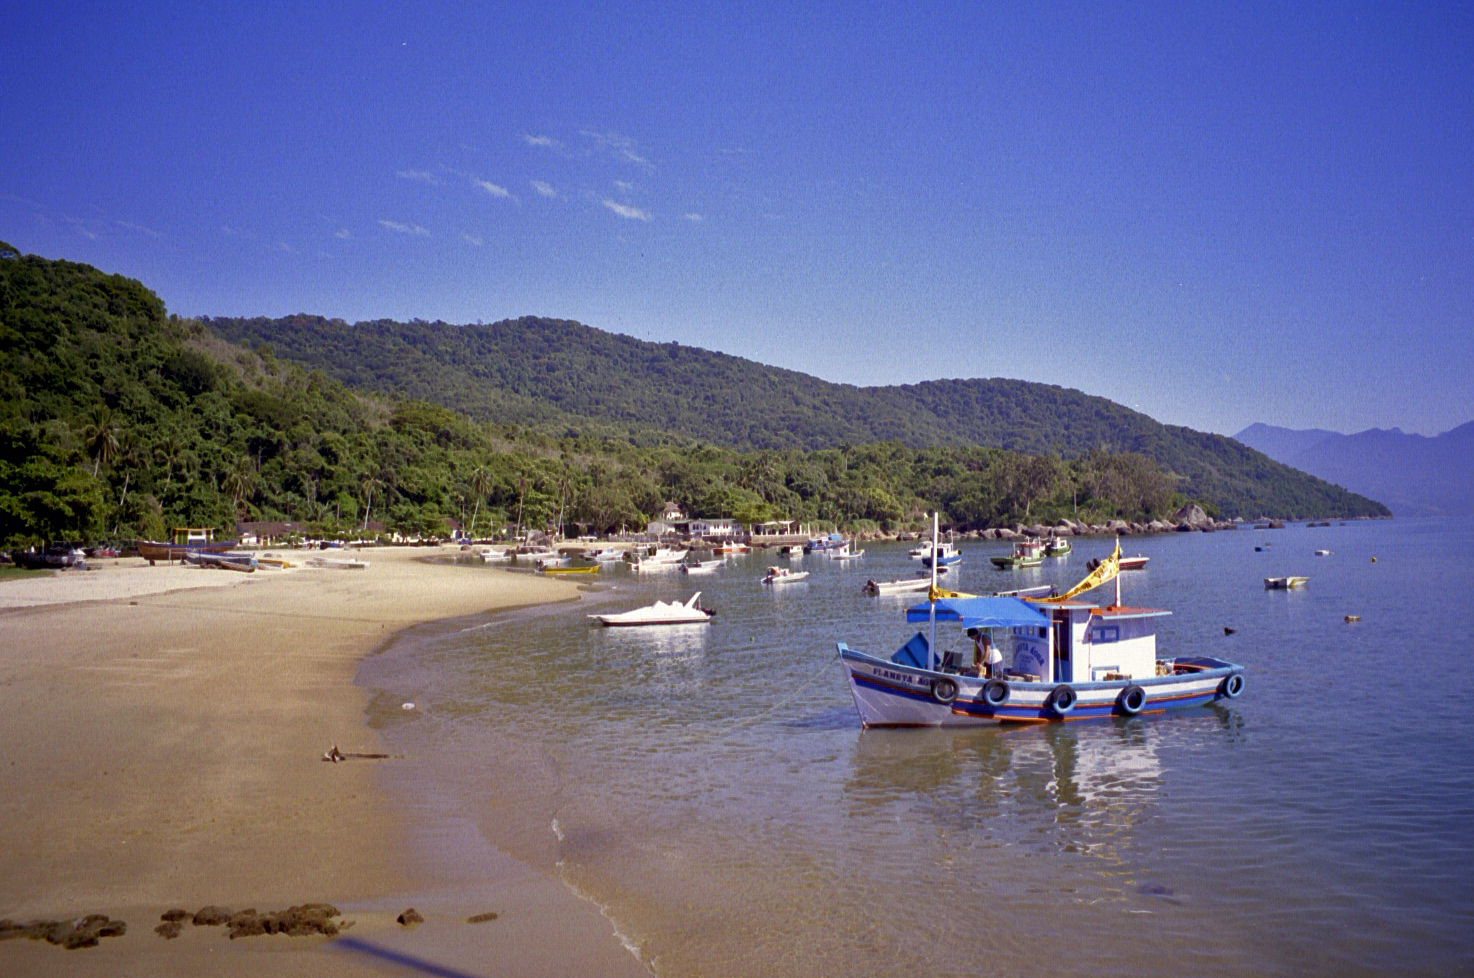 on the Brazilian coast south of Rio de Janeiro (note: this image is not suitable for large prints)